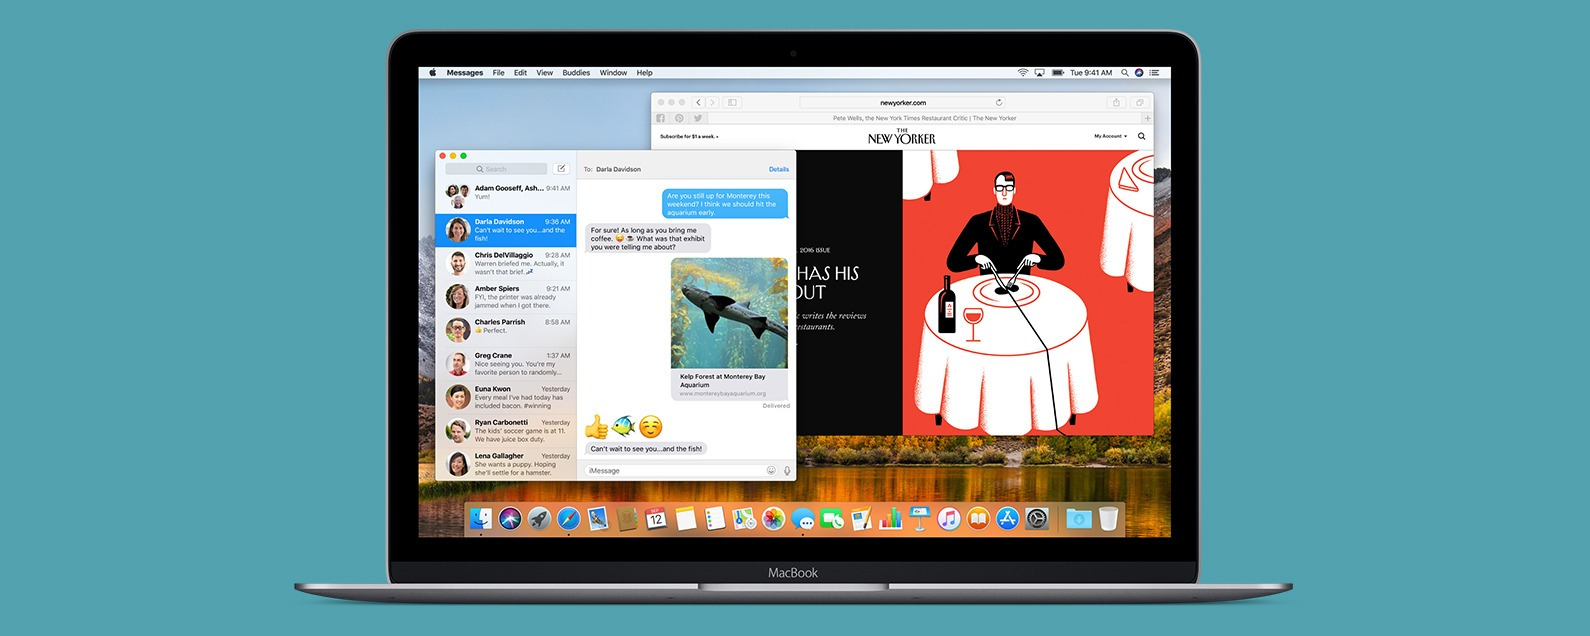 How to Get iMessage on PC (& The Dangerous Methods You